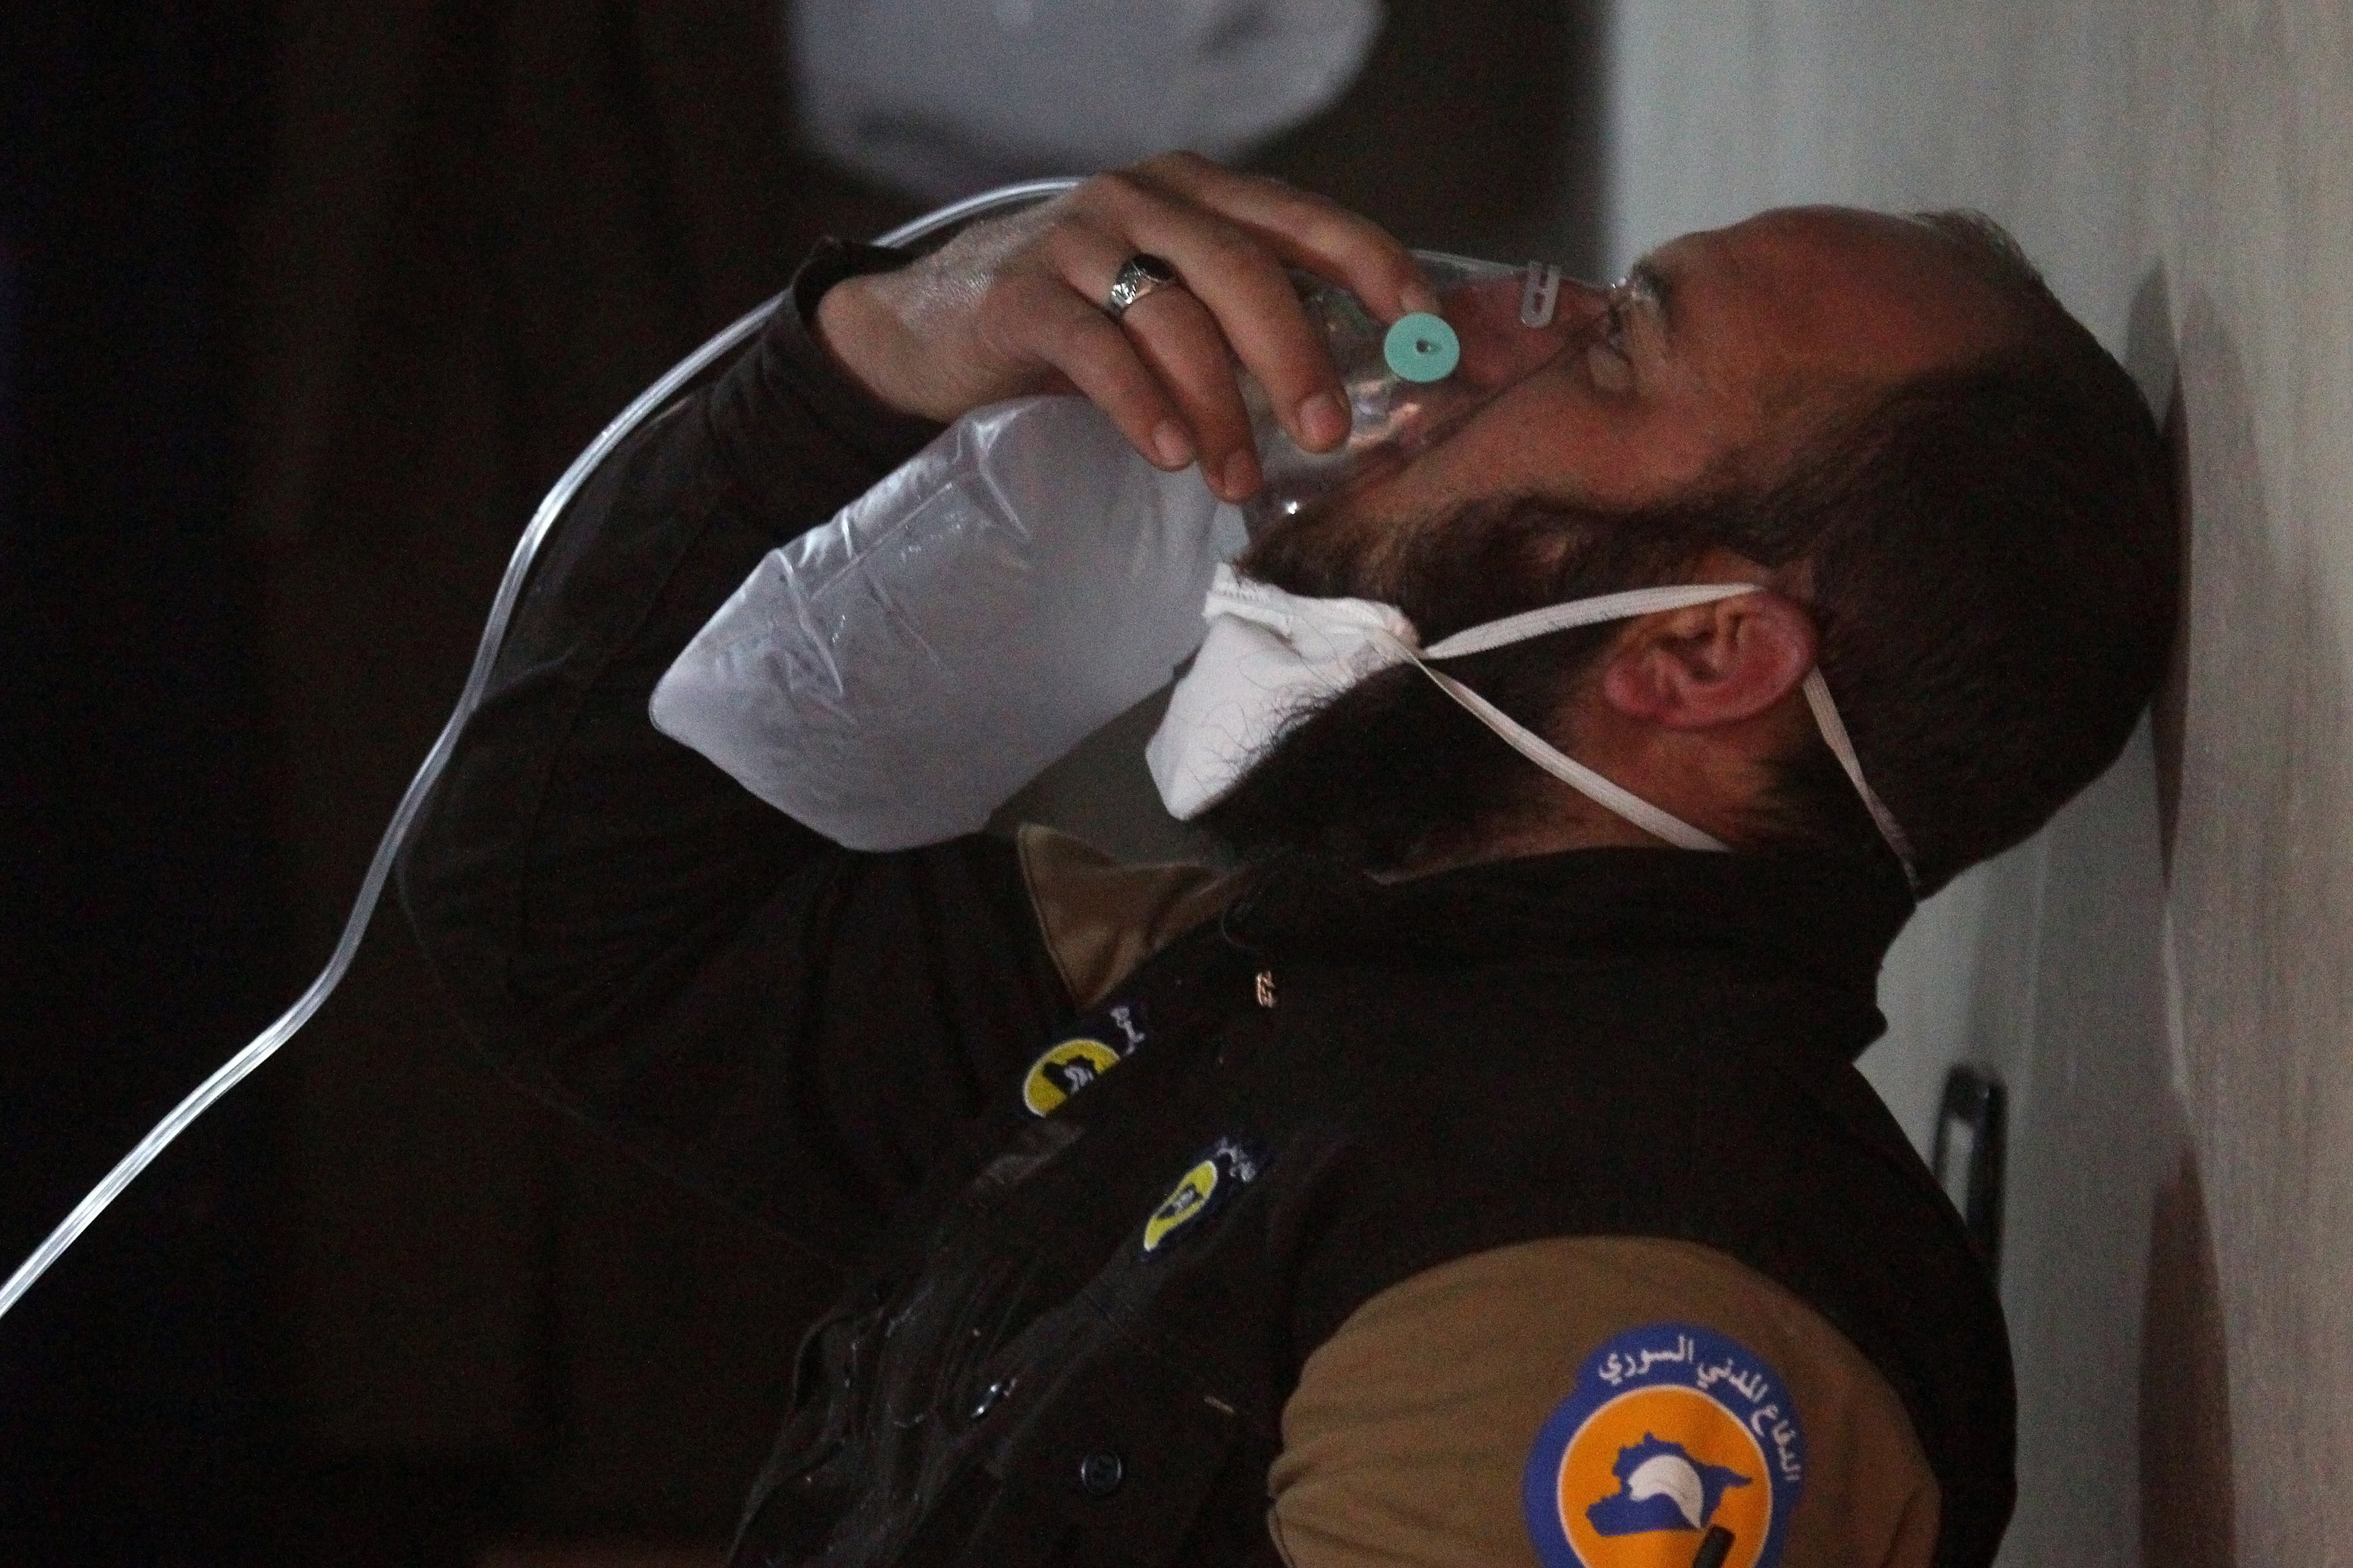 A civil defence member breathes through an oxygen mask, after what rescue workers described as a suspected gas attack in the town of Khan Sheikhoun in rebel-held Idlib, Syria on April 4, 2017. (REUTERS/Ammar Abdullah)